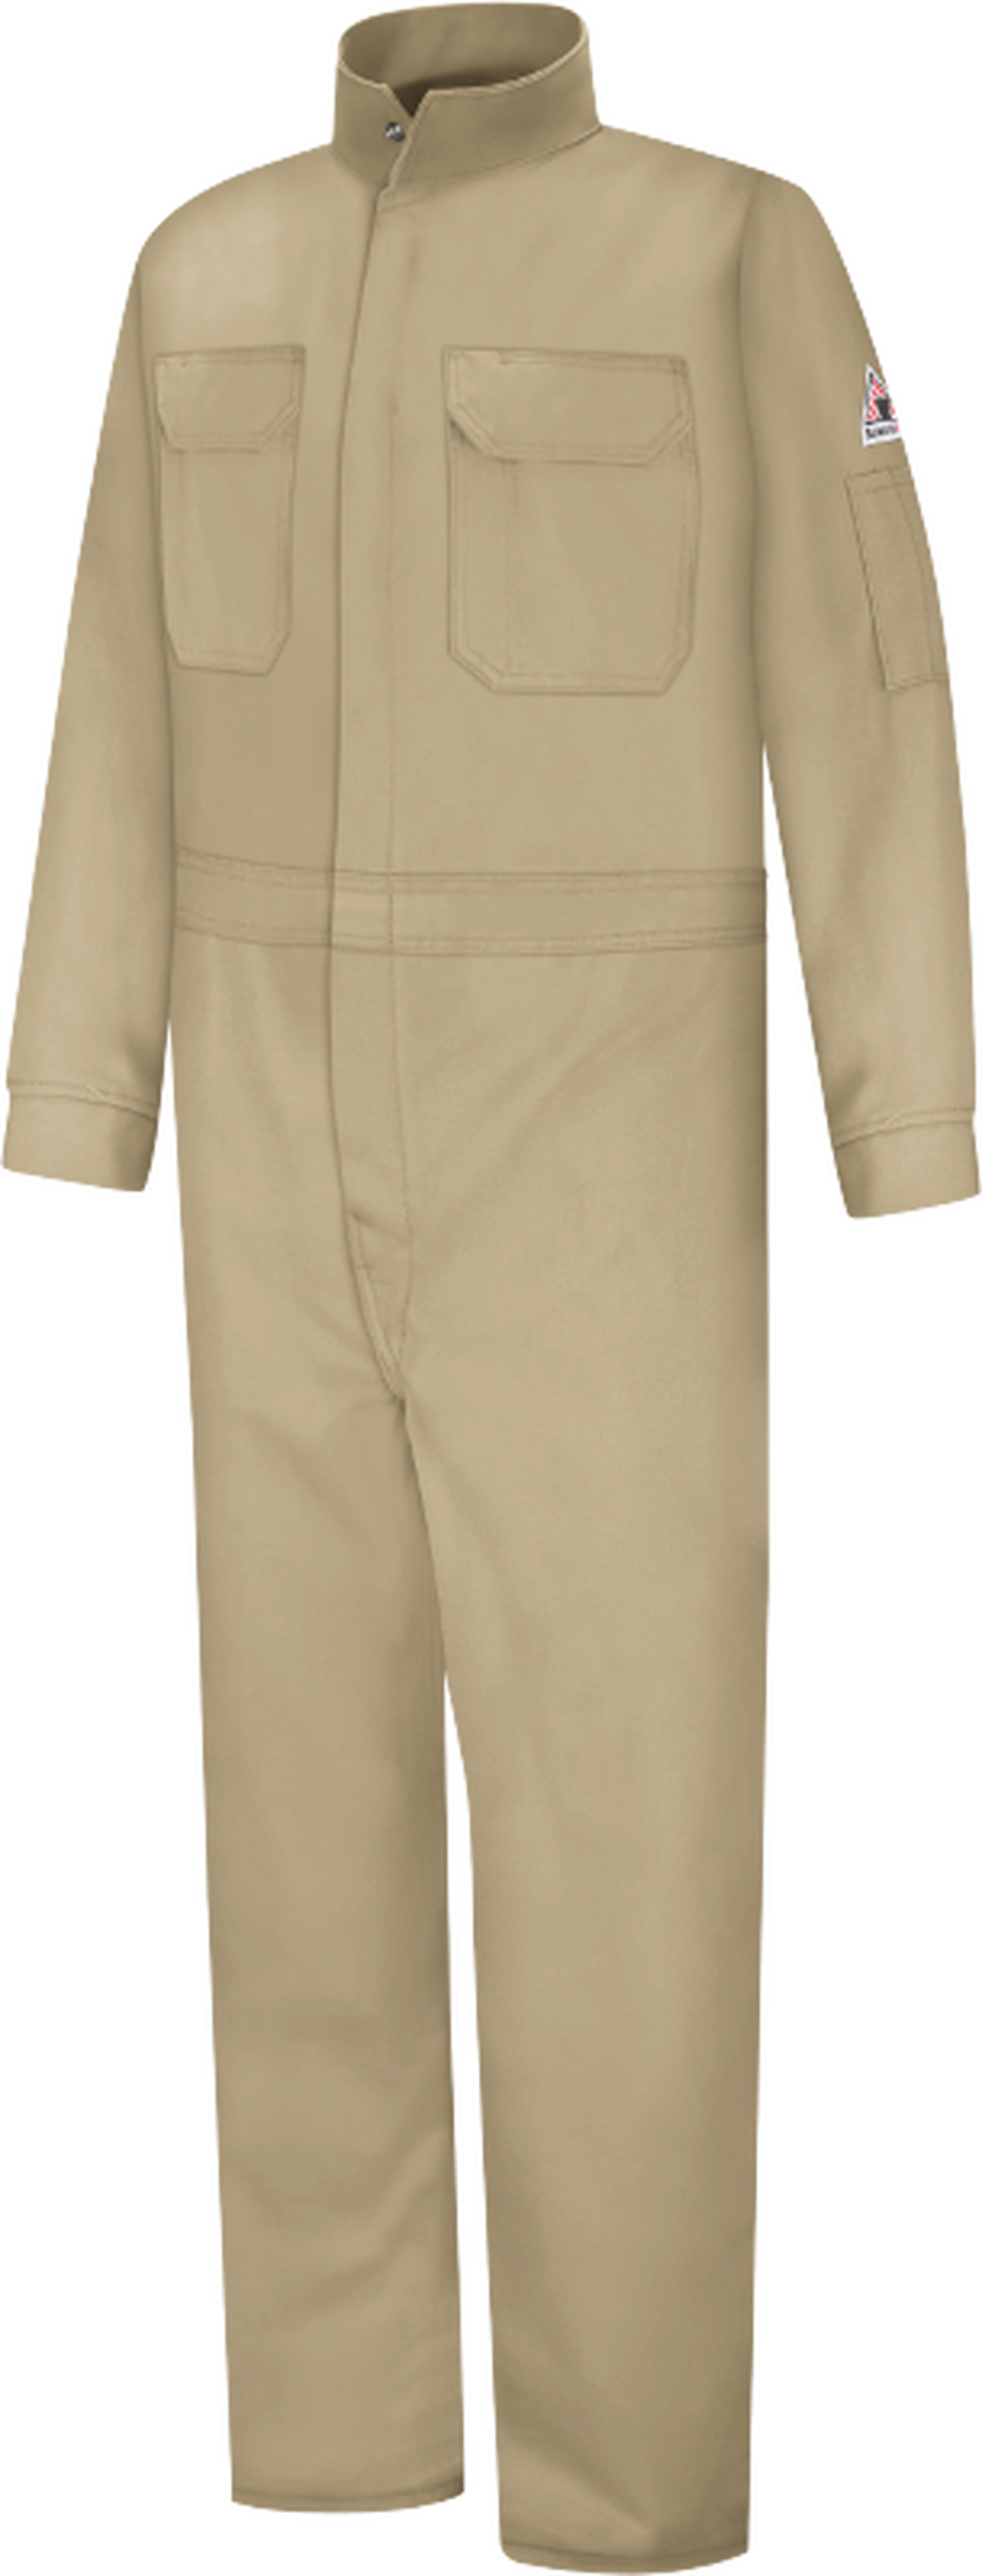 Women's Midweight Excel FR® ComforTouch® Premium Coverall